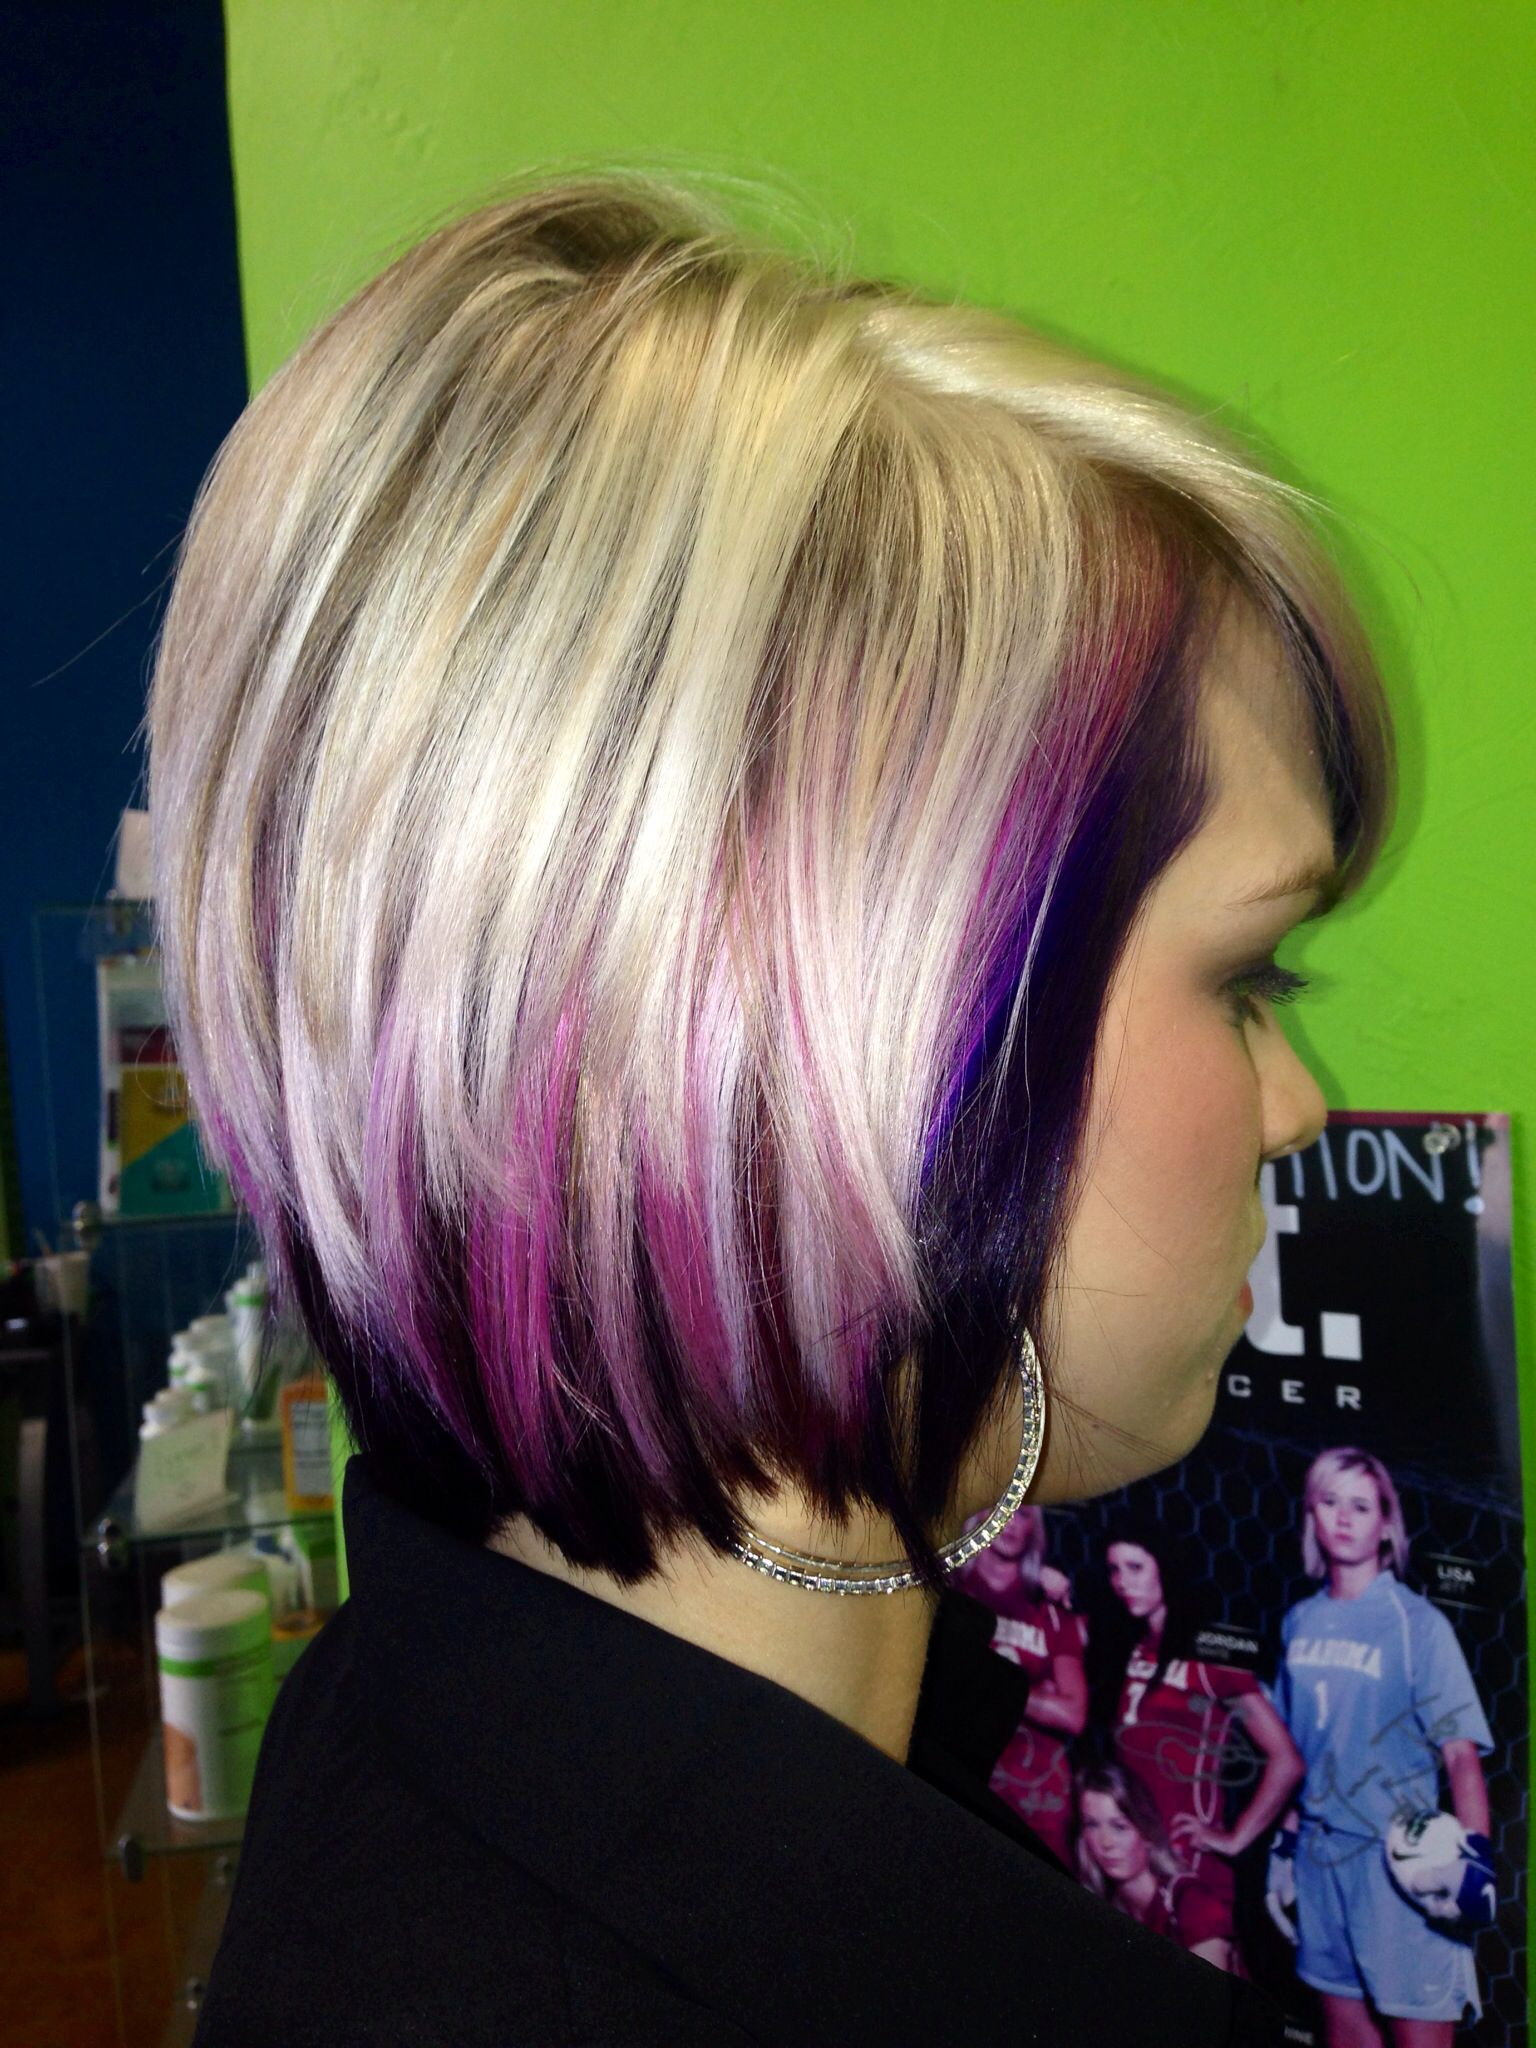 Pink purple and blonde hair | My Hair | Pinterest | Pink ...